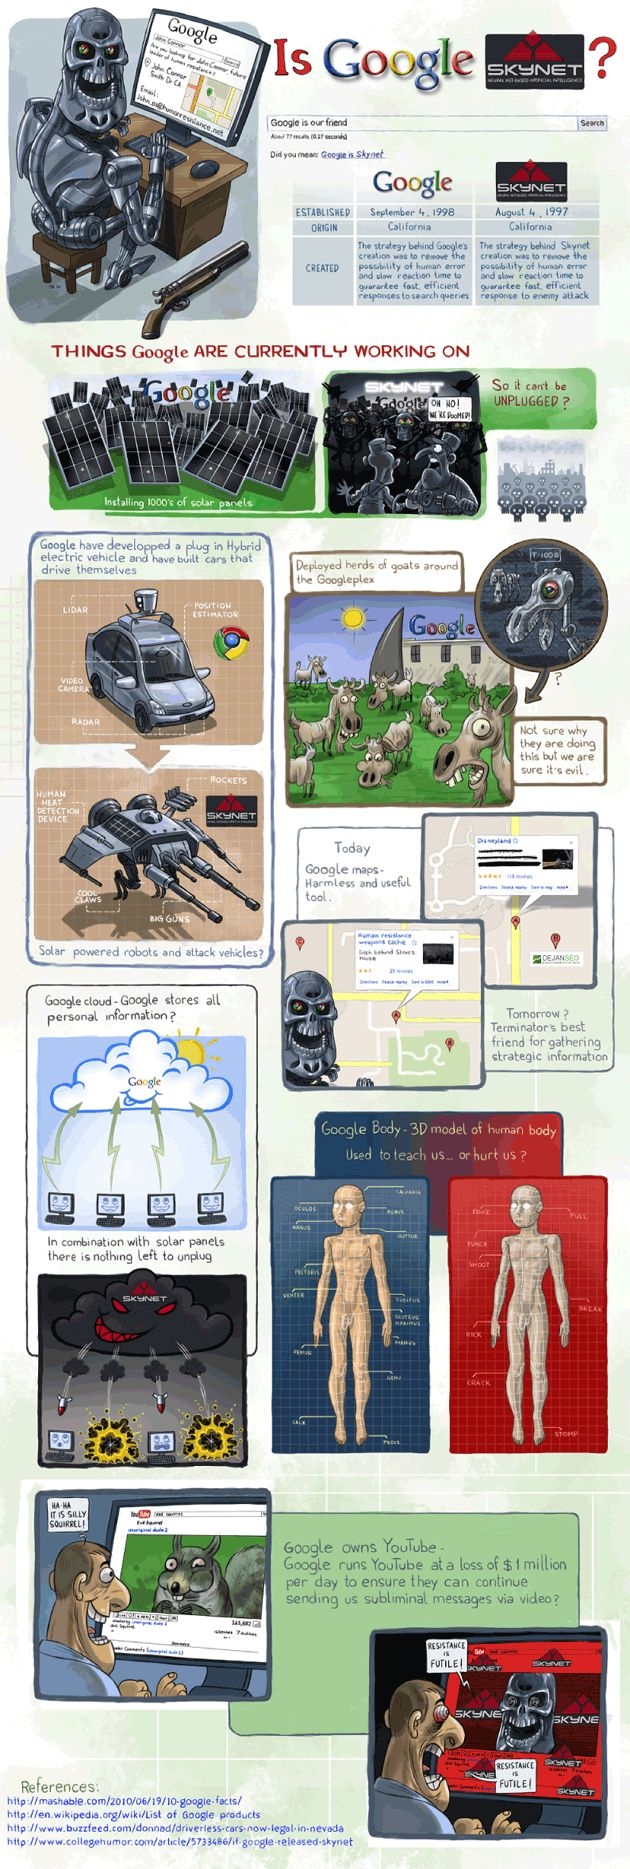 Is Google Skynet? - Infographic by Dejan SEO - This funny cartoon takes Google conspiracy theory to a whole new level.